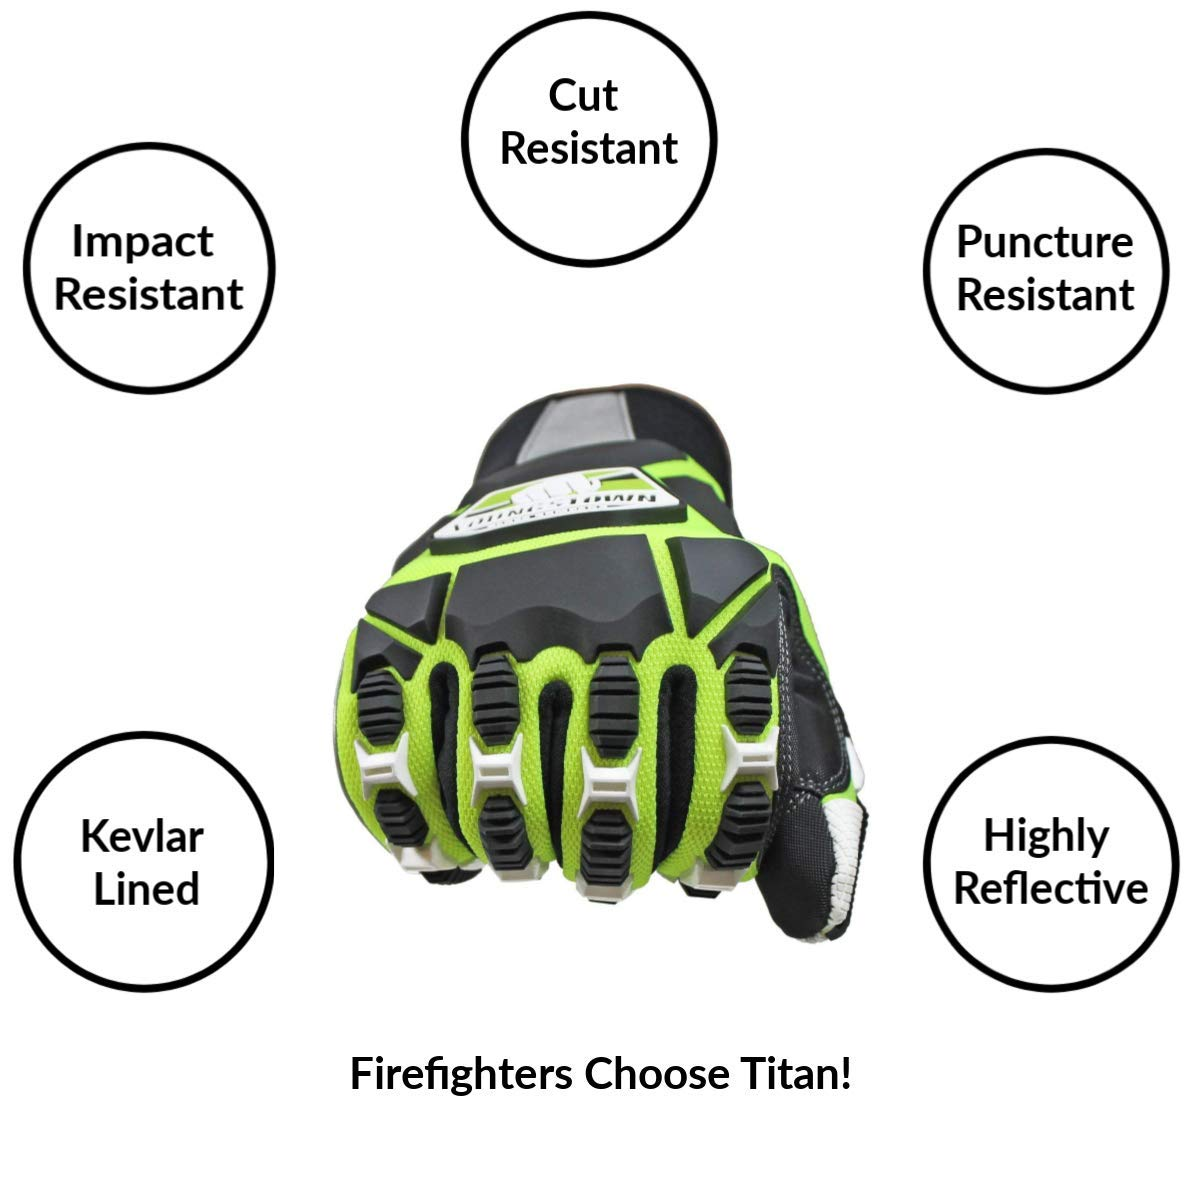 Tools Firefighter Bundle - 1 - Cut Resistant Extrication Gloves (Large) | 1 - Glove Strap (lime Green) | 1 - Drag Strap | 1 - Shove Knife | 1 - Firefighter Log Book (Track training hours, Run activit by Generic (Image #5)